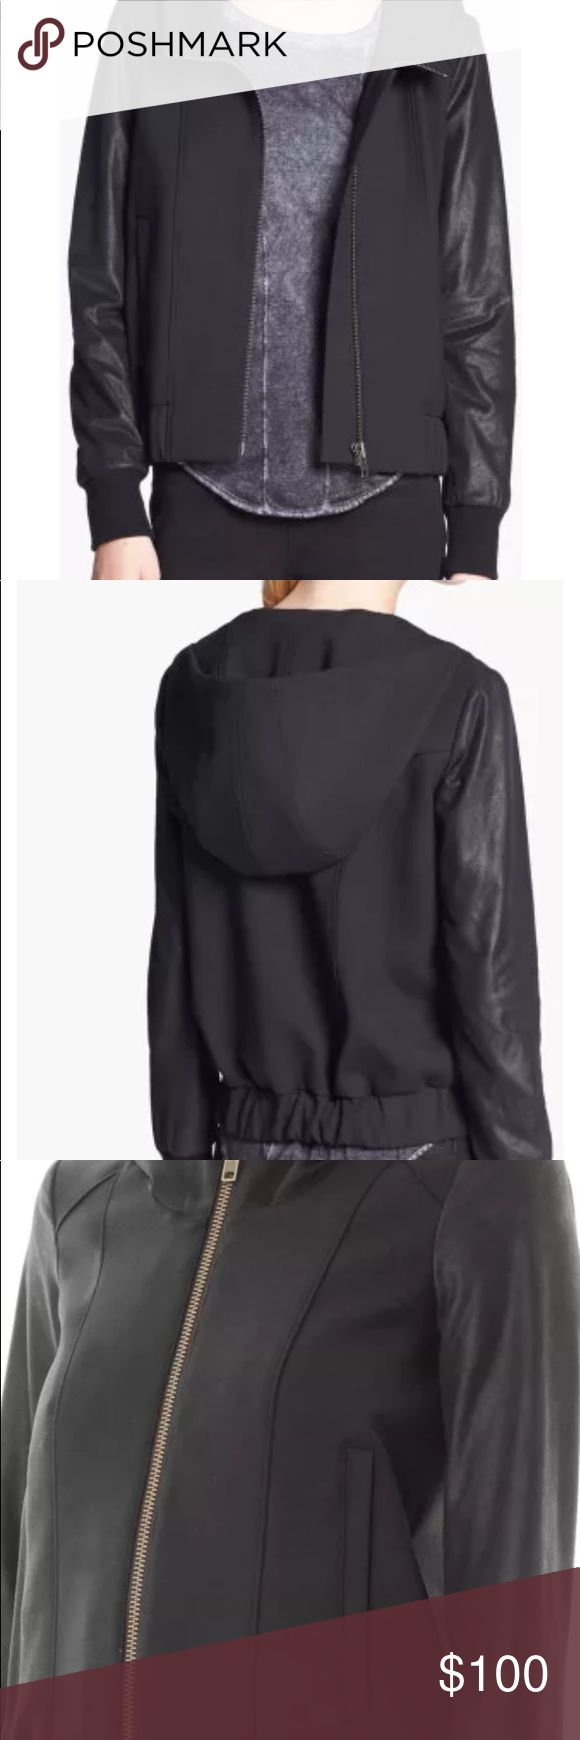 Helmet Lang black leather bomber hooded coat XS Really awesome bomber jacket. Virgin wool blend with calf leather sleeves. Edgy yet feminine. Size P, fits like XS. Big hood! Made in USA! Purchased at Neiman Marcus in Troy, MI. Helmut Lang Jackets & Coats Utility Jackets